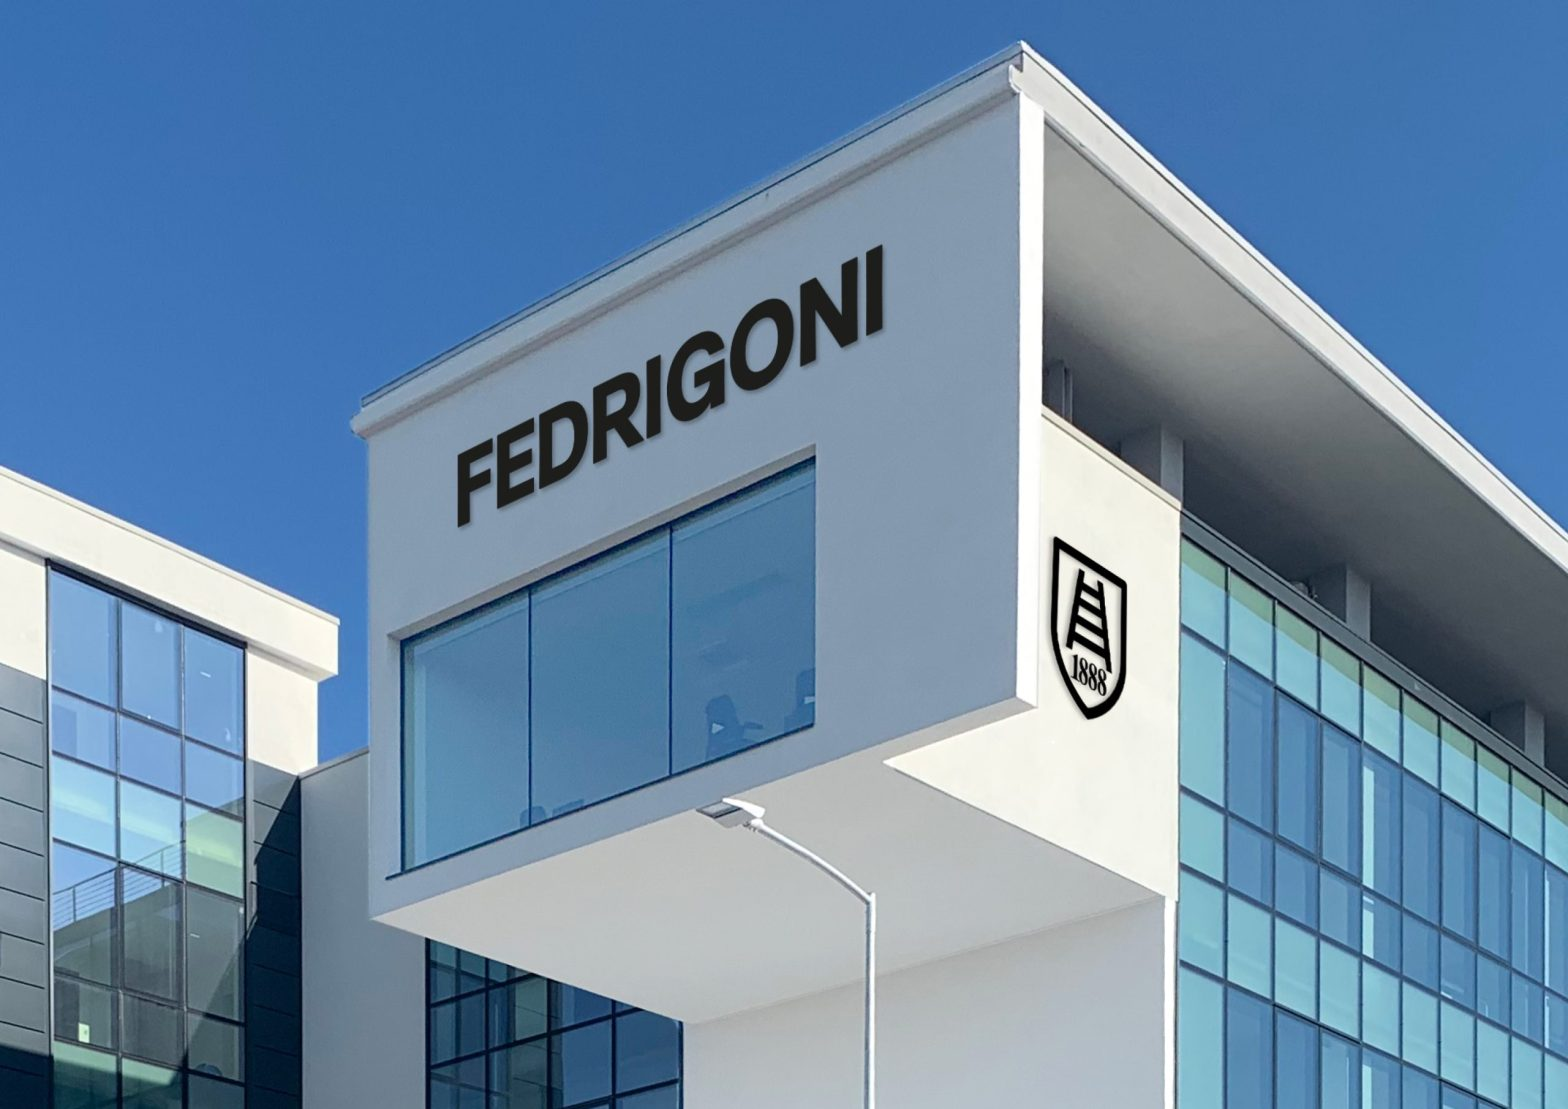 Thumbnail for Pentagram Designed Fedrigoni's New Identity And It's As Refined As You'd Expect It To Be